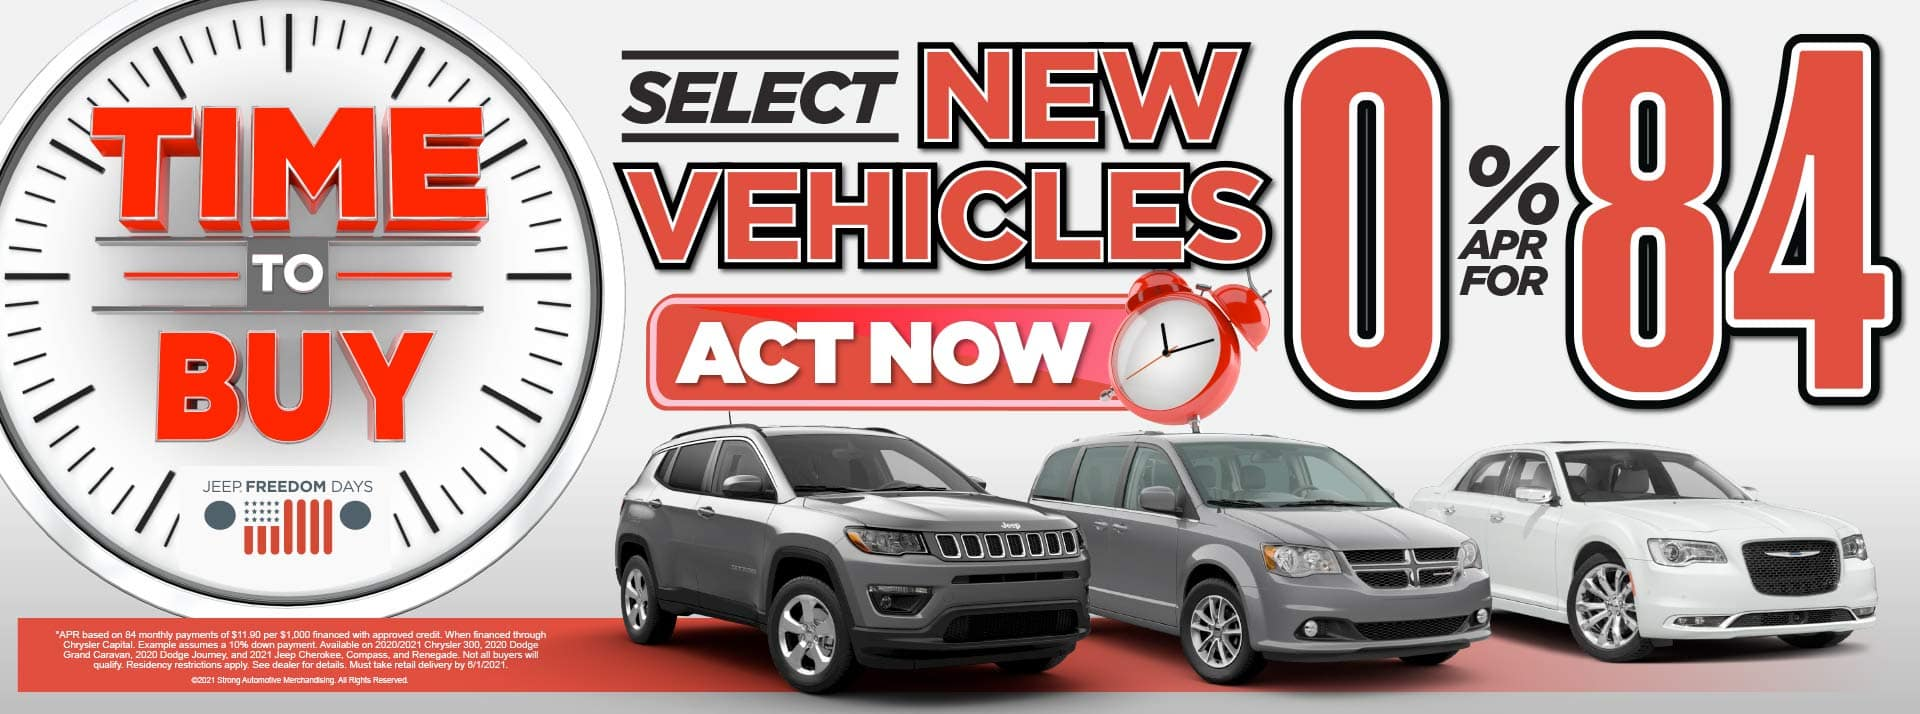 SELECT NEW VEHICLES 0% APR FOR 84 MOS* ACT NOW